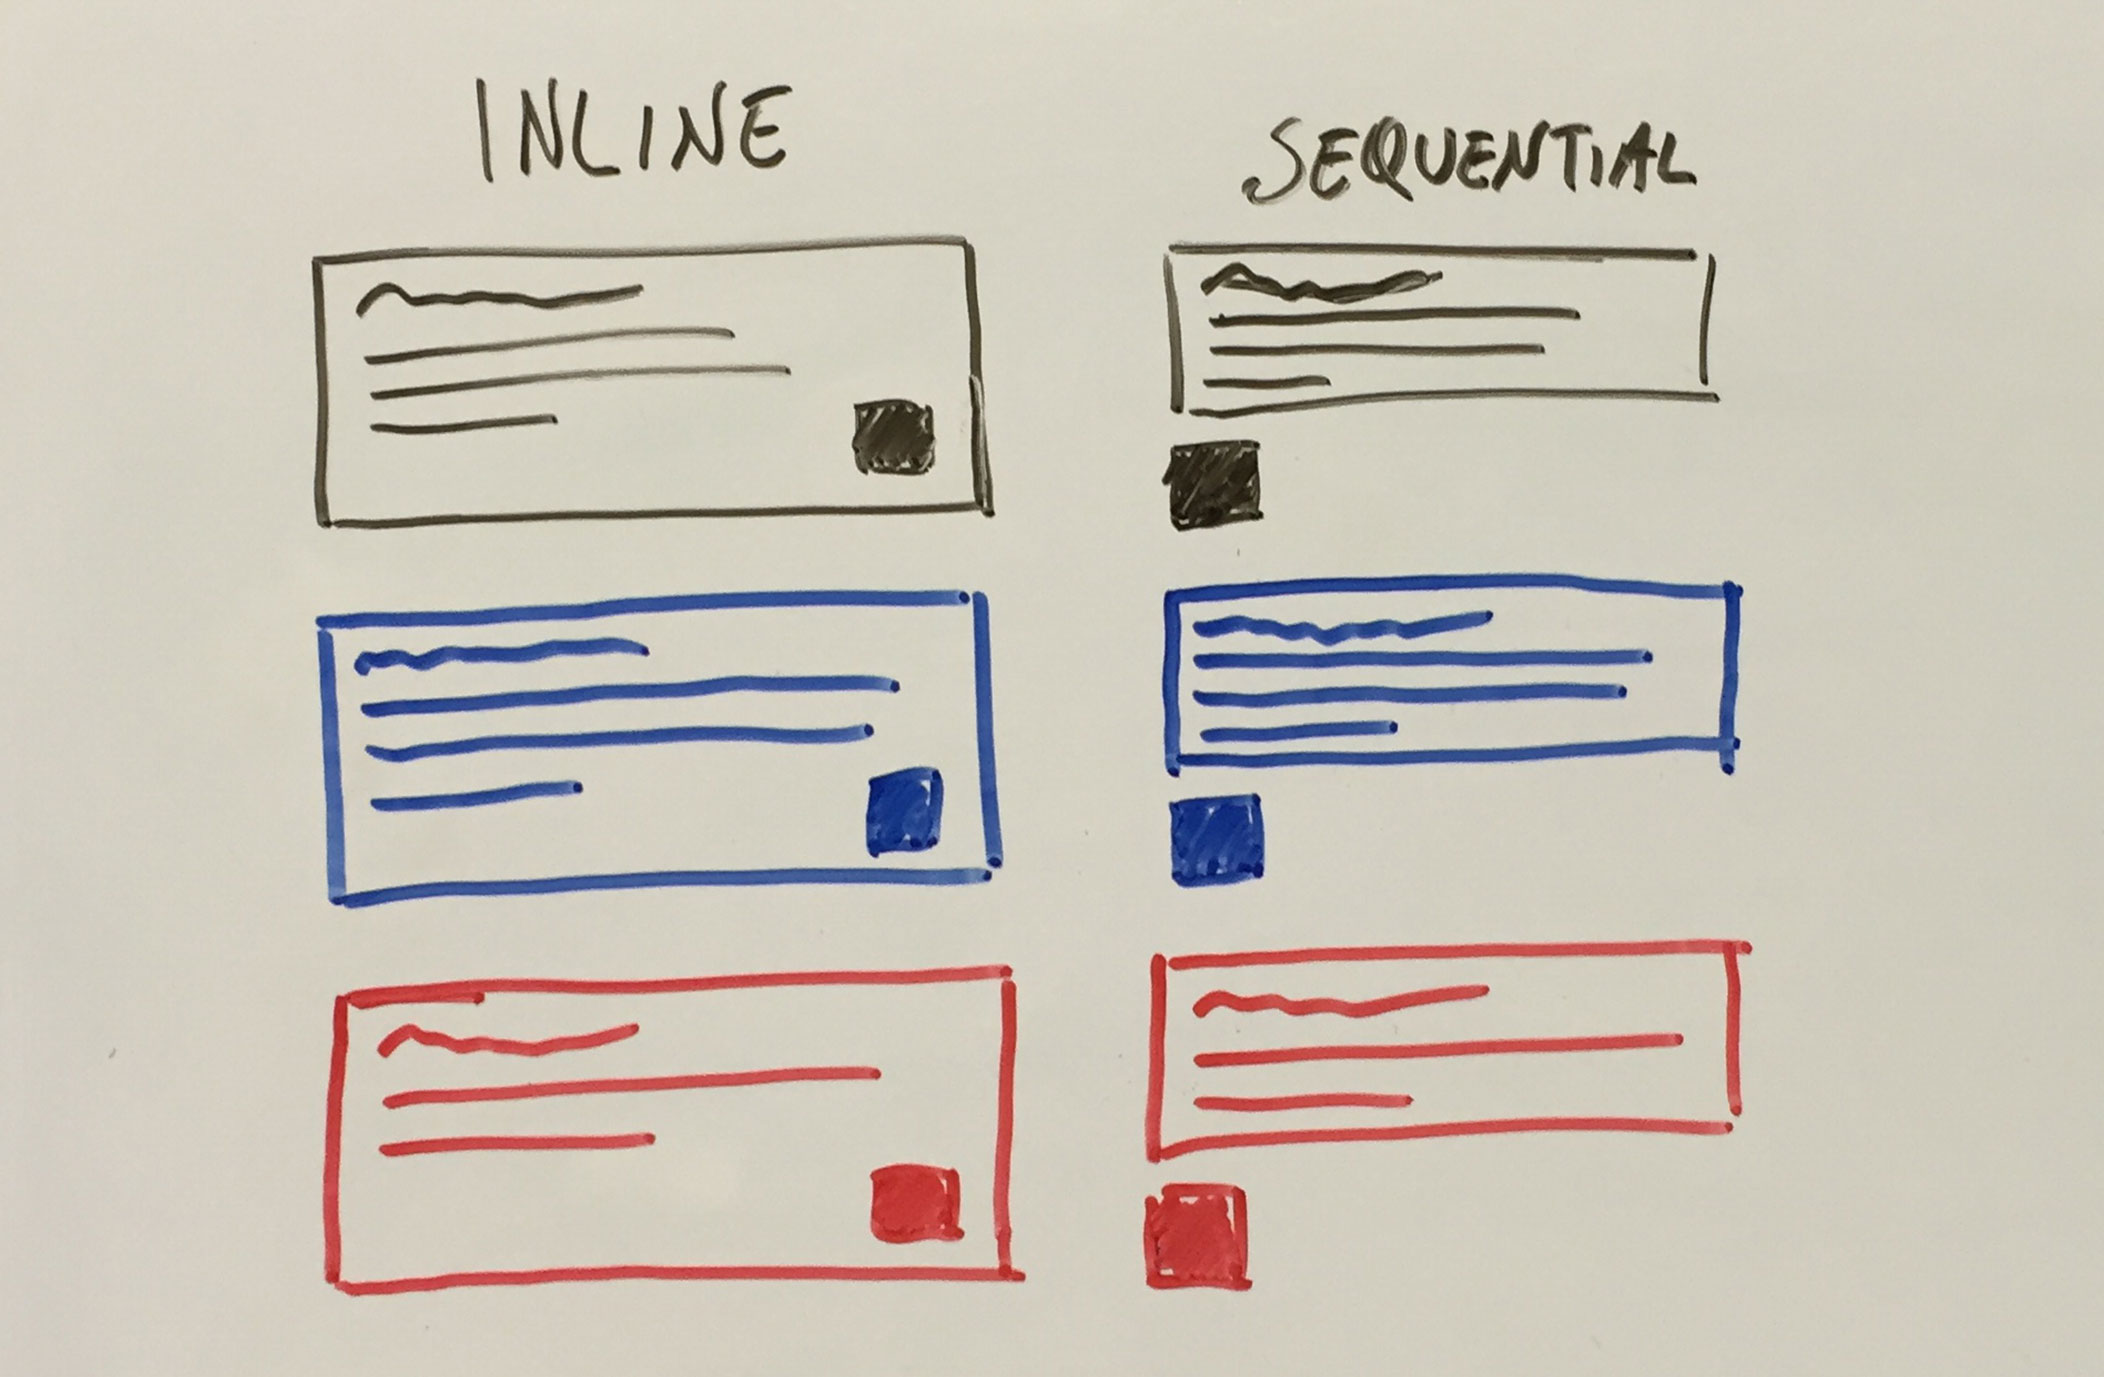 diagrams showing inline actions in listview items as separate items sequentially ordered in place